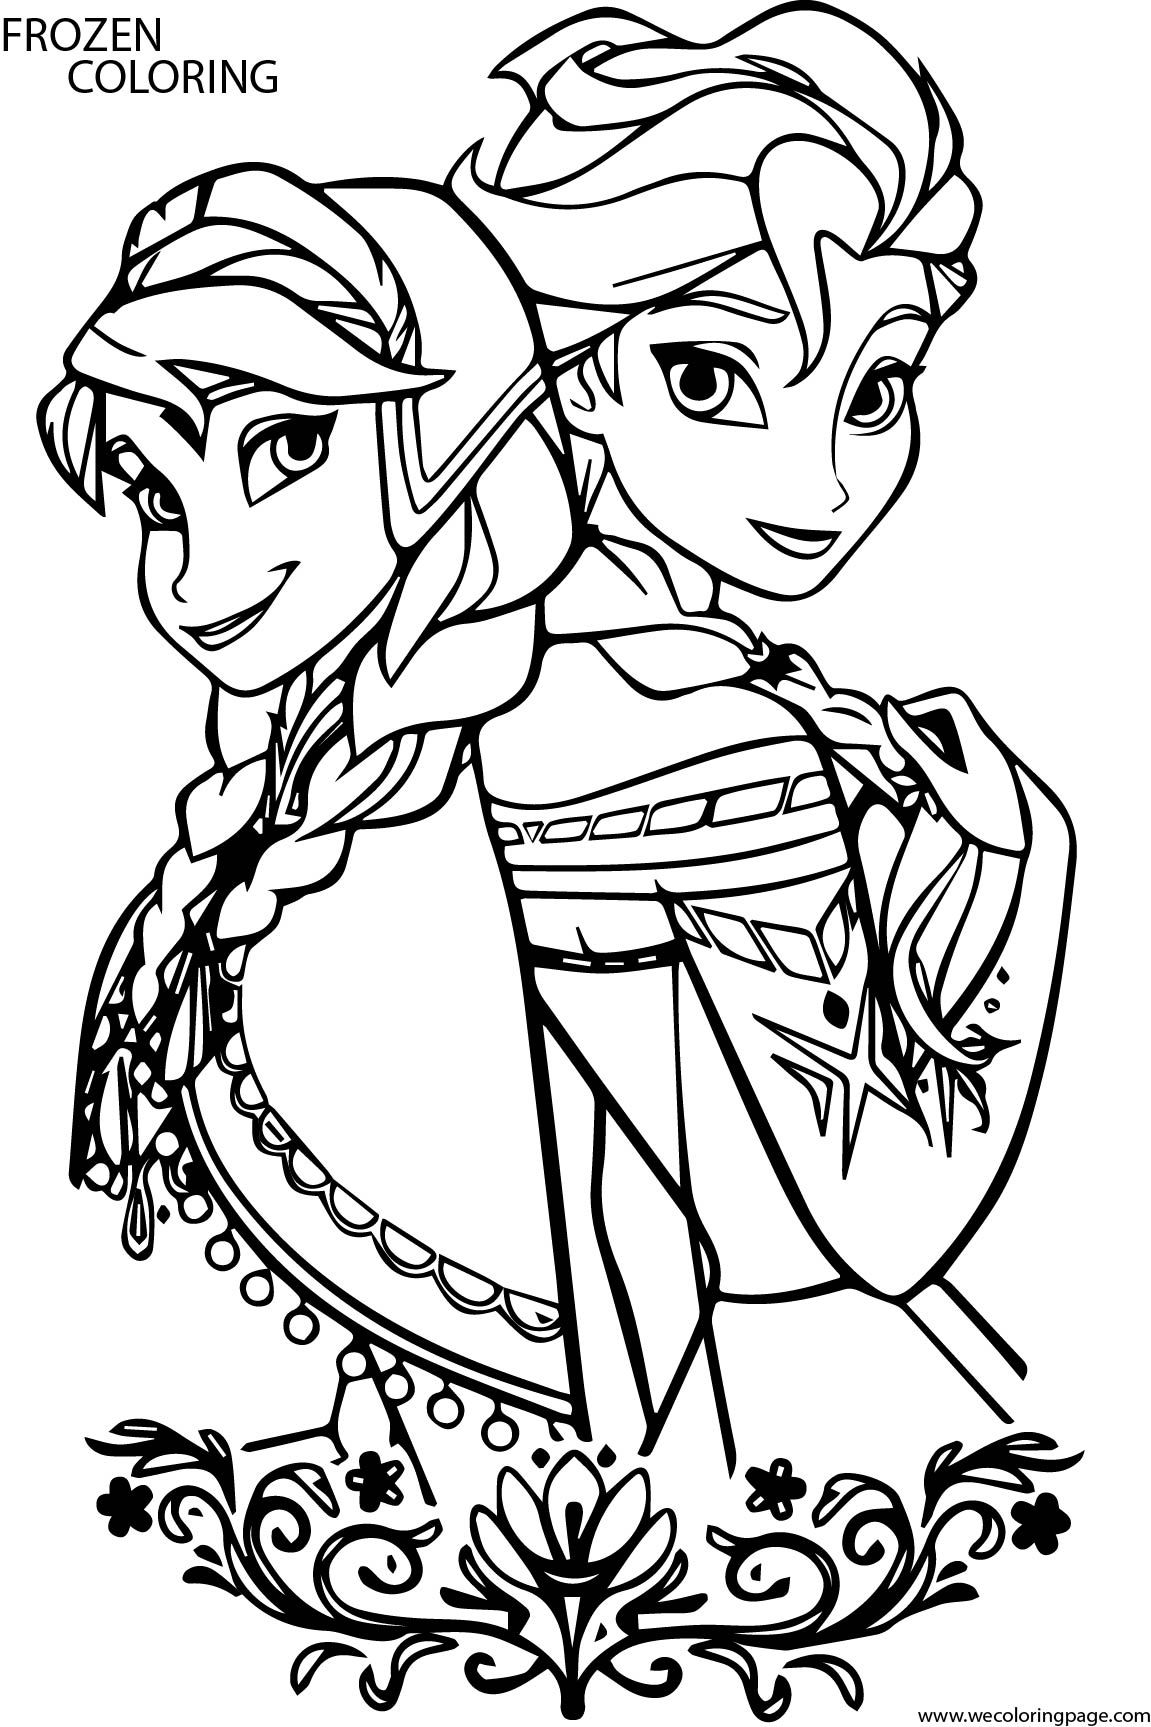 Frozen Coloring Pages Trolls : Frozen snow troll coloring page wecoloringpage